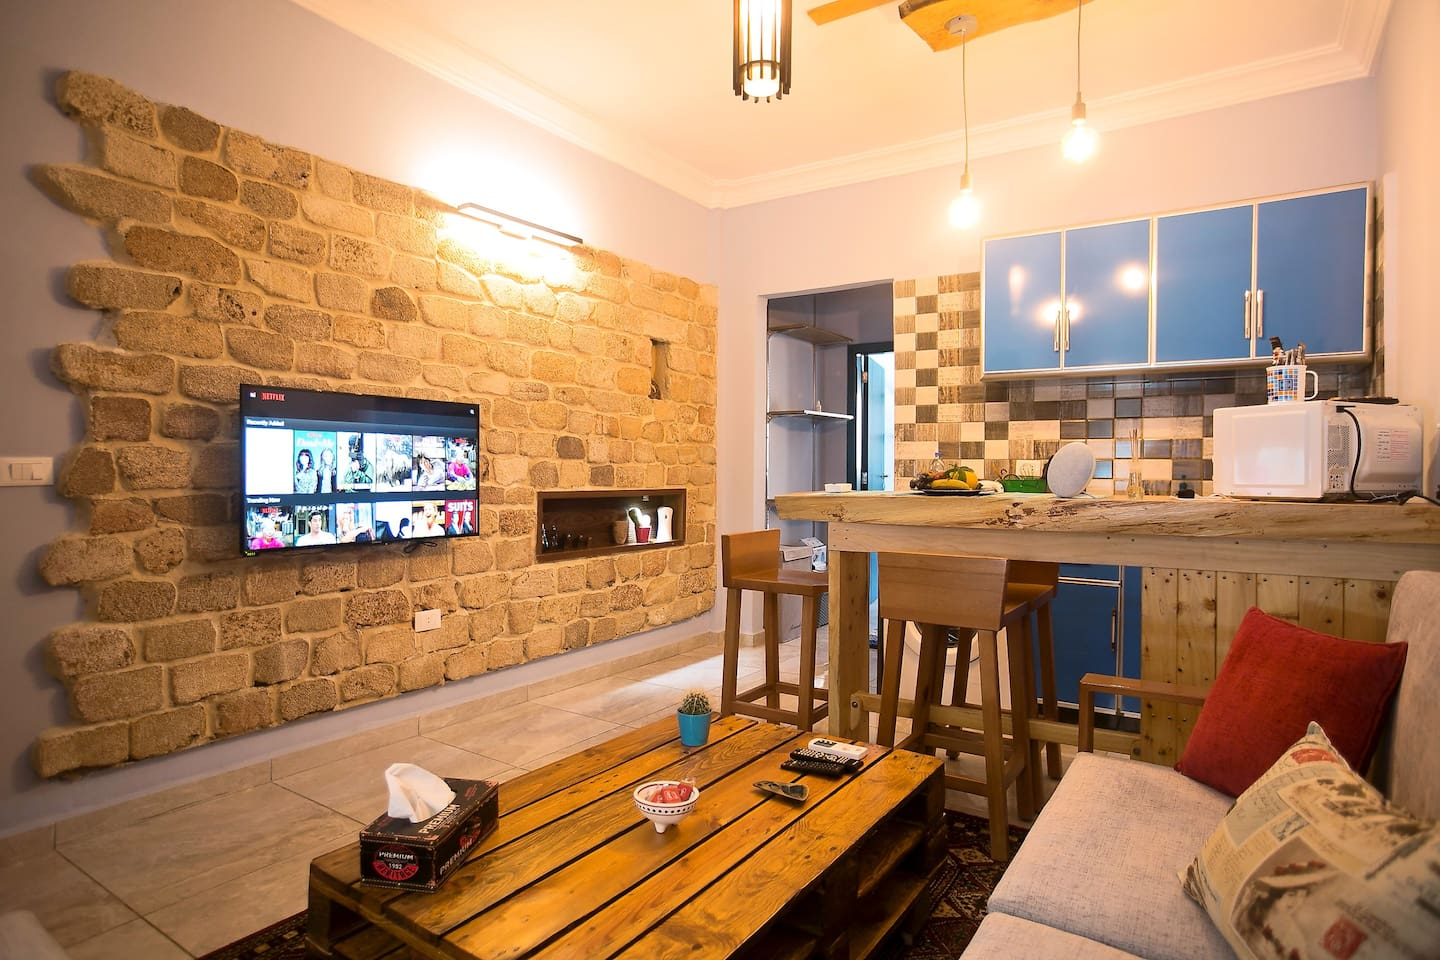 Living room along with a full equipped kitchen bar just next to you. Enjoy making your meal :)  Accessed with a stove, a microwave, an electric kettle, a washing machine, a Bluetooth speaker and all kitchen utensils needed.